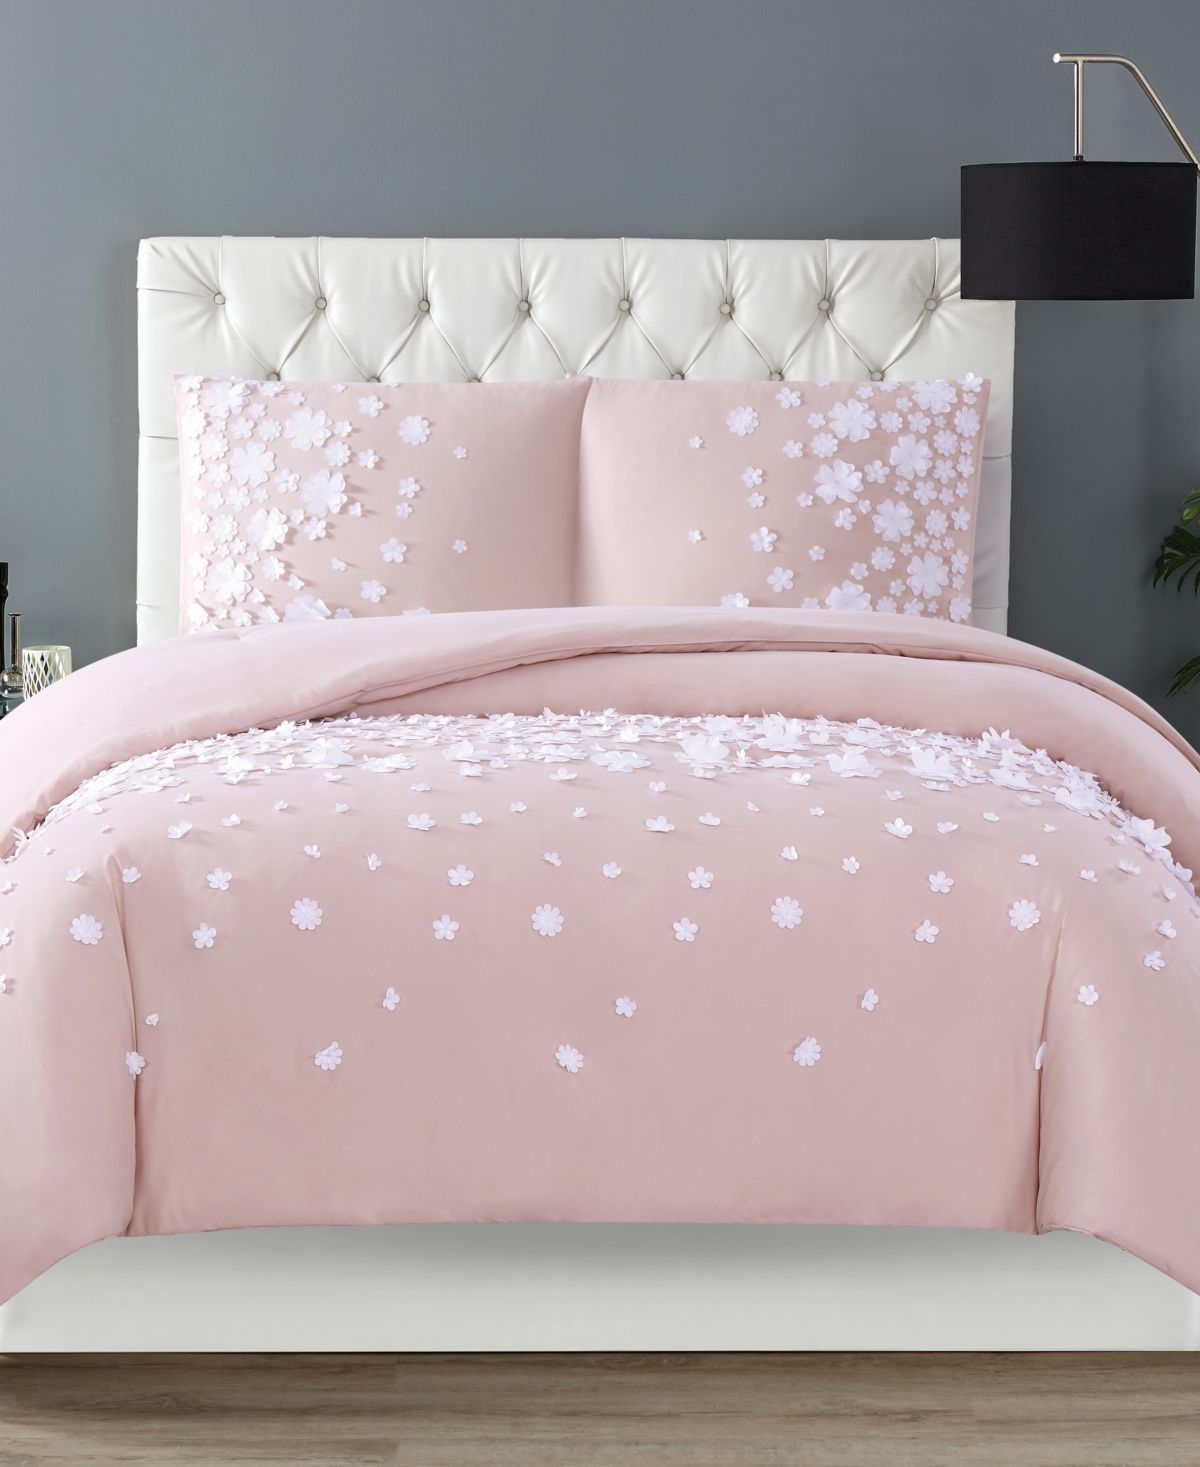 Christian Siriano New York Christian Siriano Confetti Flowers 3 Piece Blush King Comforter Set & Reviews - Comforters: Fashion - Bed & Bath - Macy's